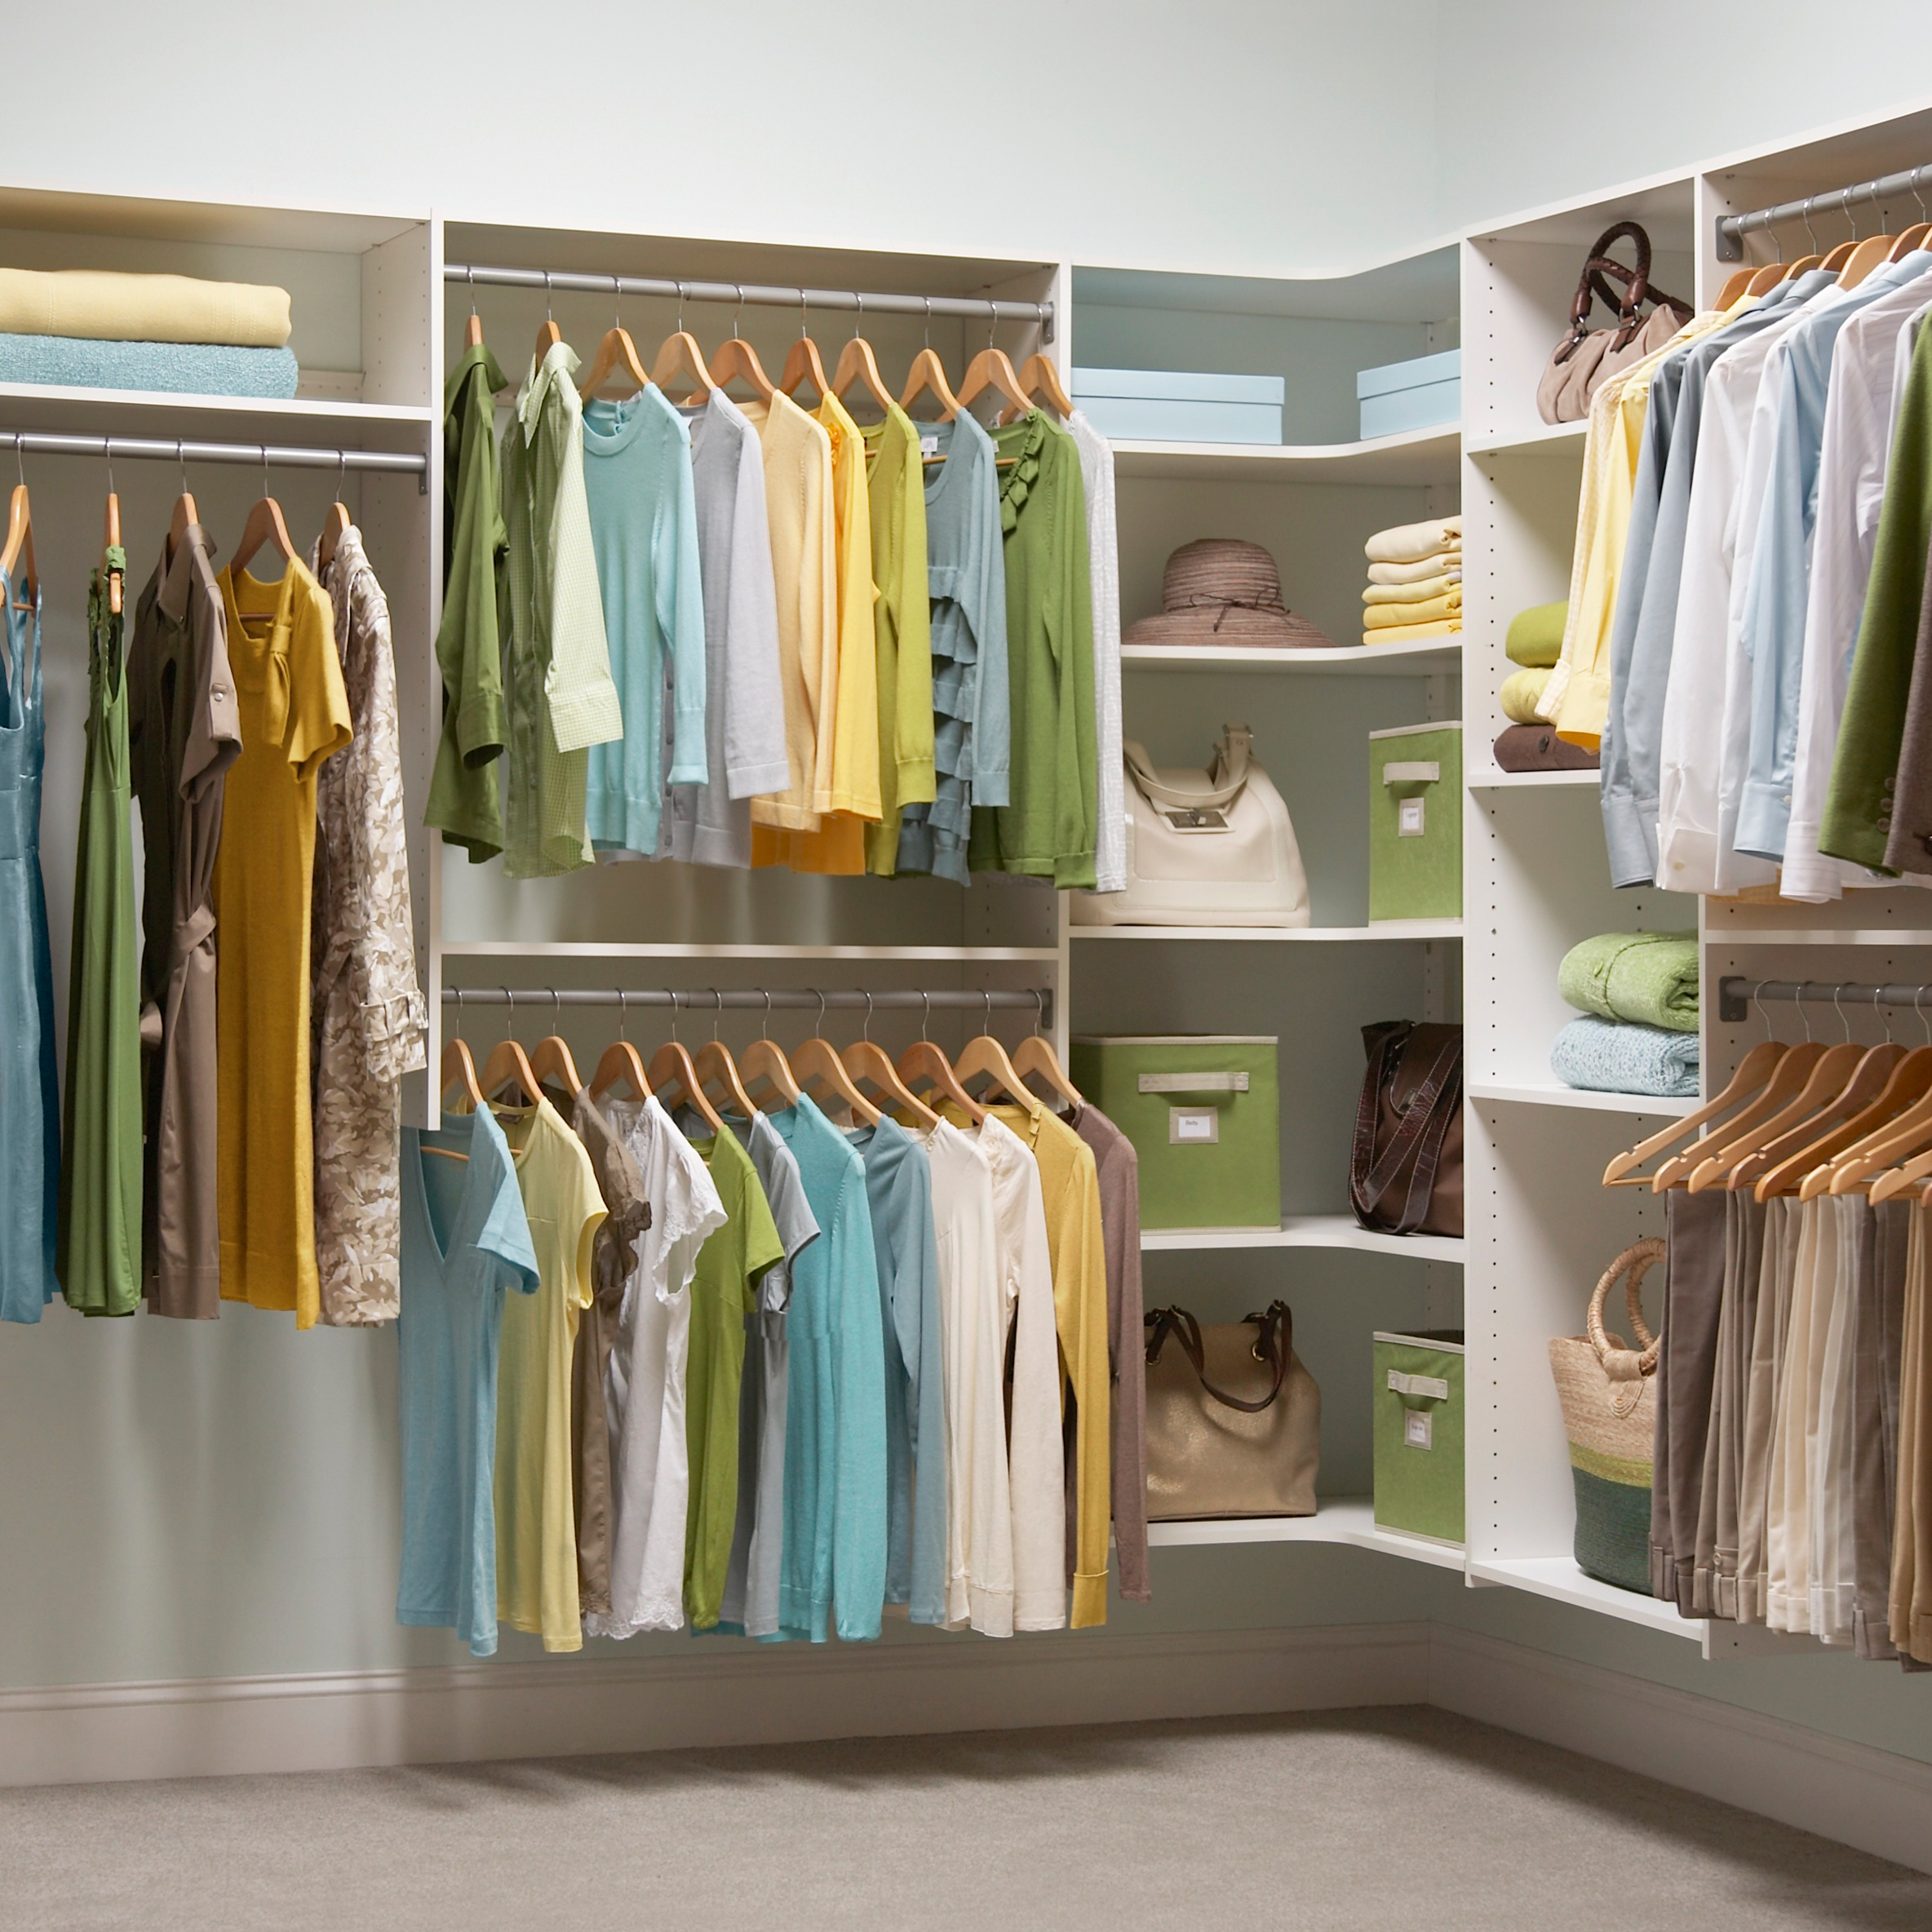 Diy Walk In Closet | Inexpensive Closet Systems | Unique Closet Ideas